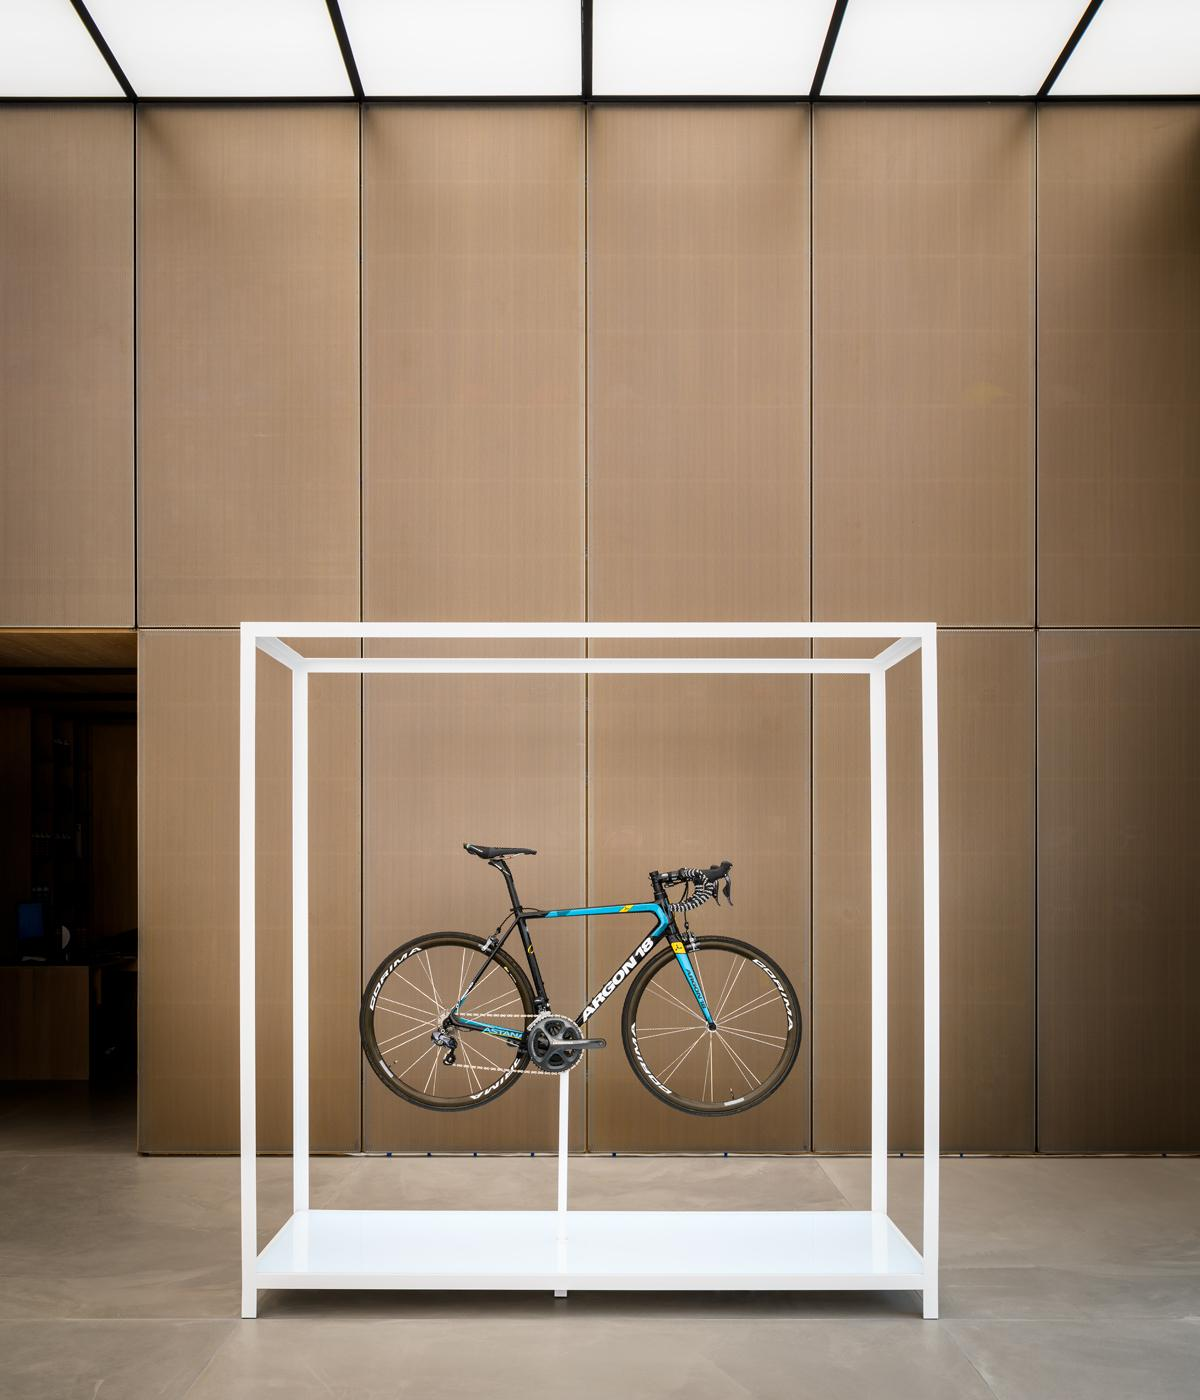 United Cycling design HQ in Copenhagen